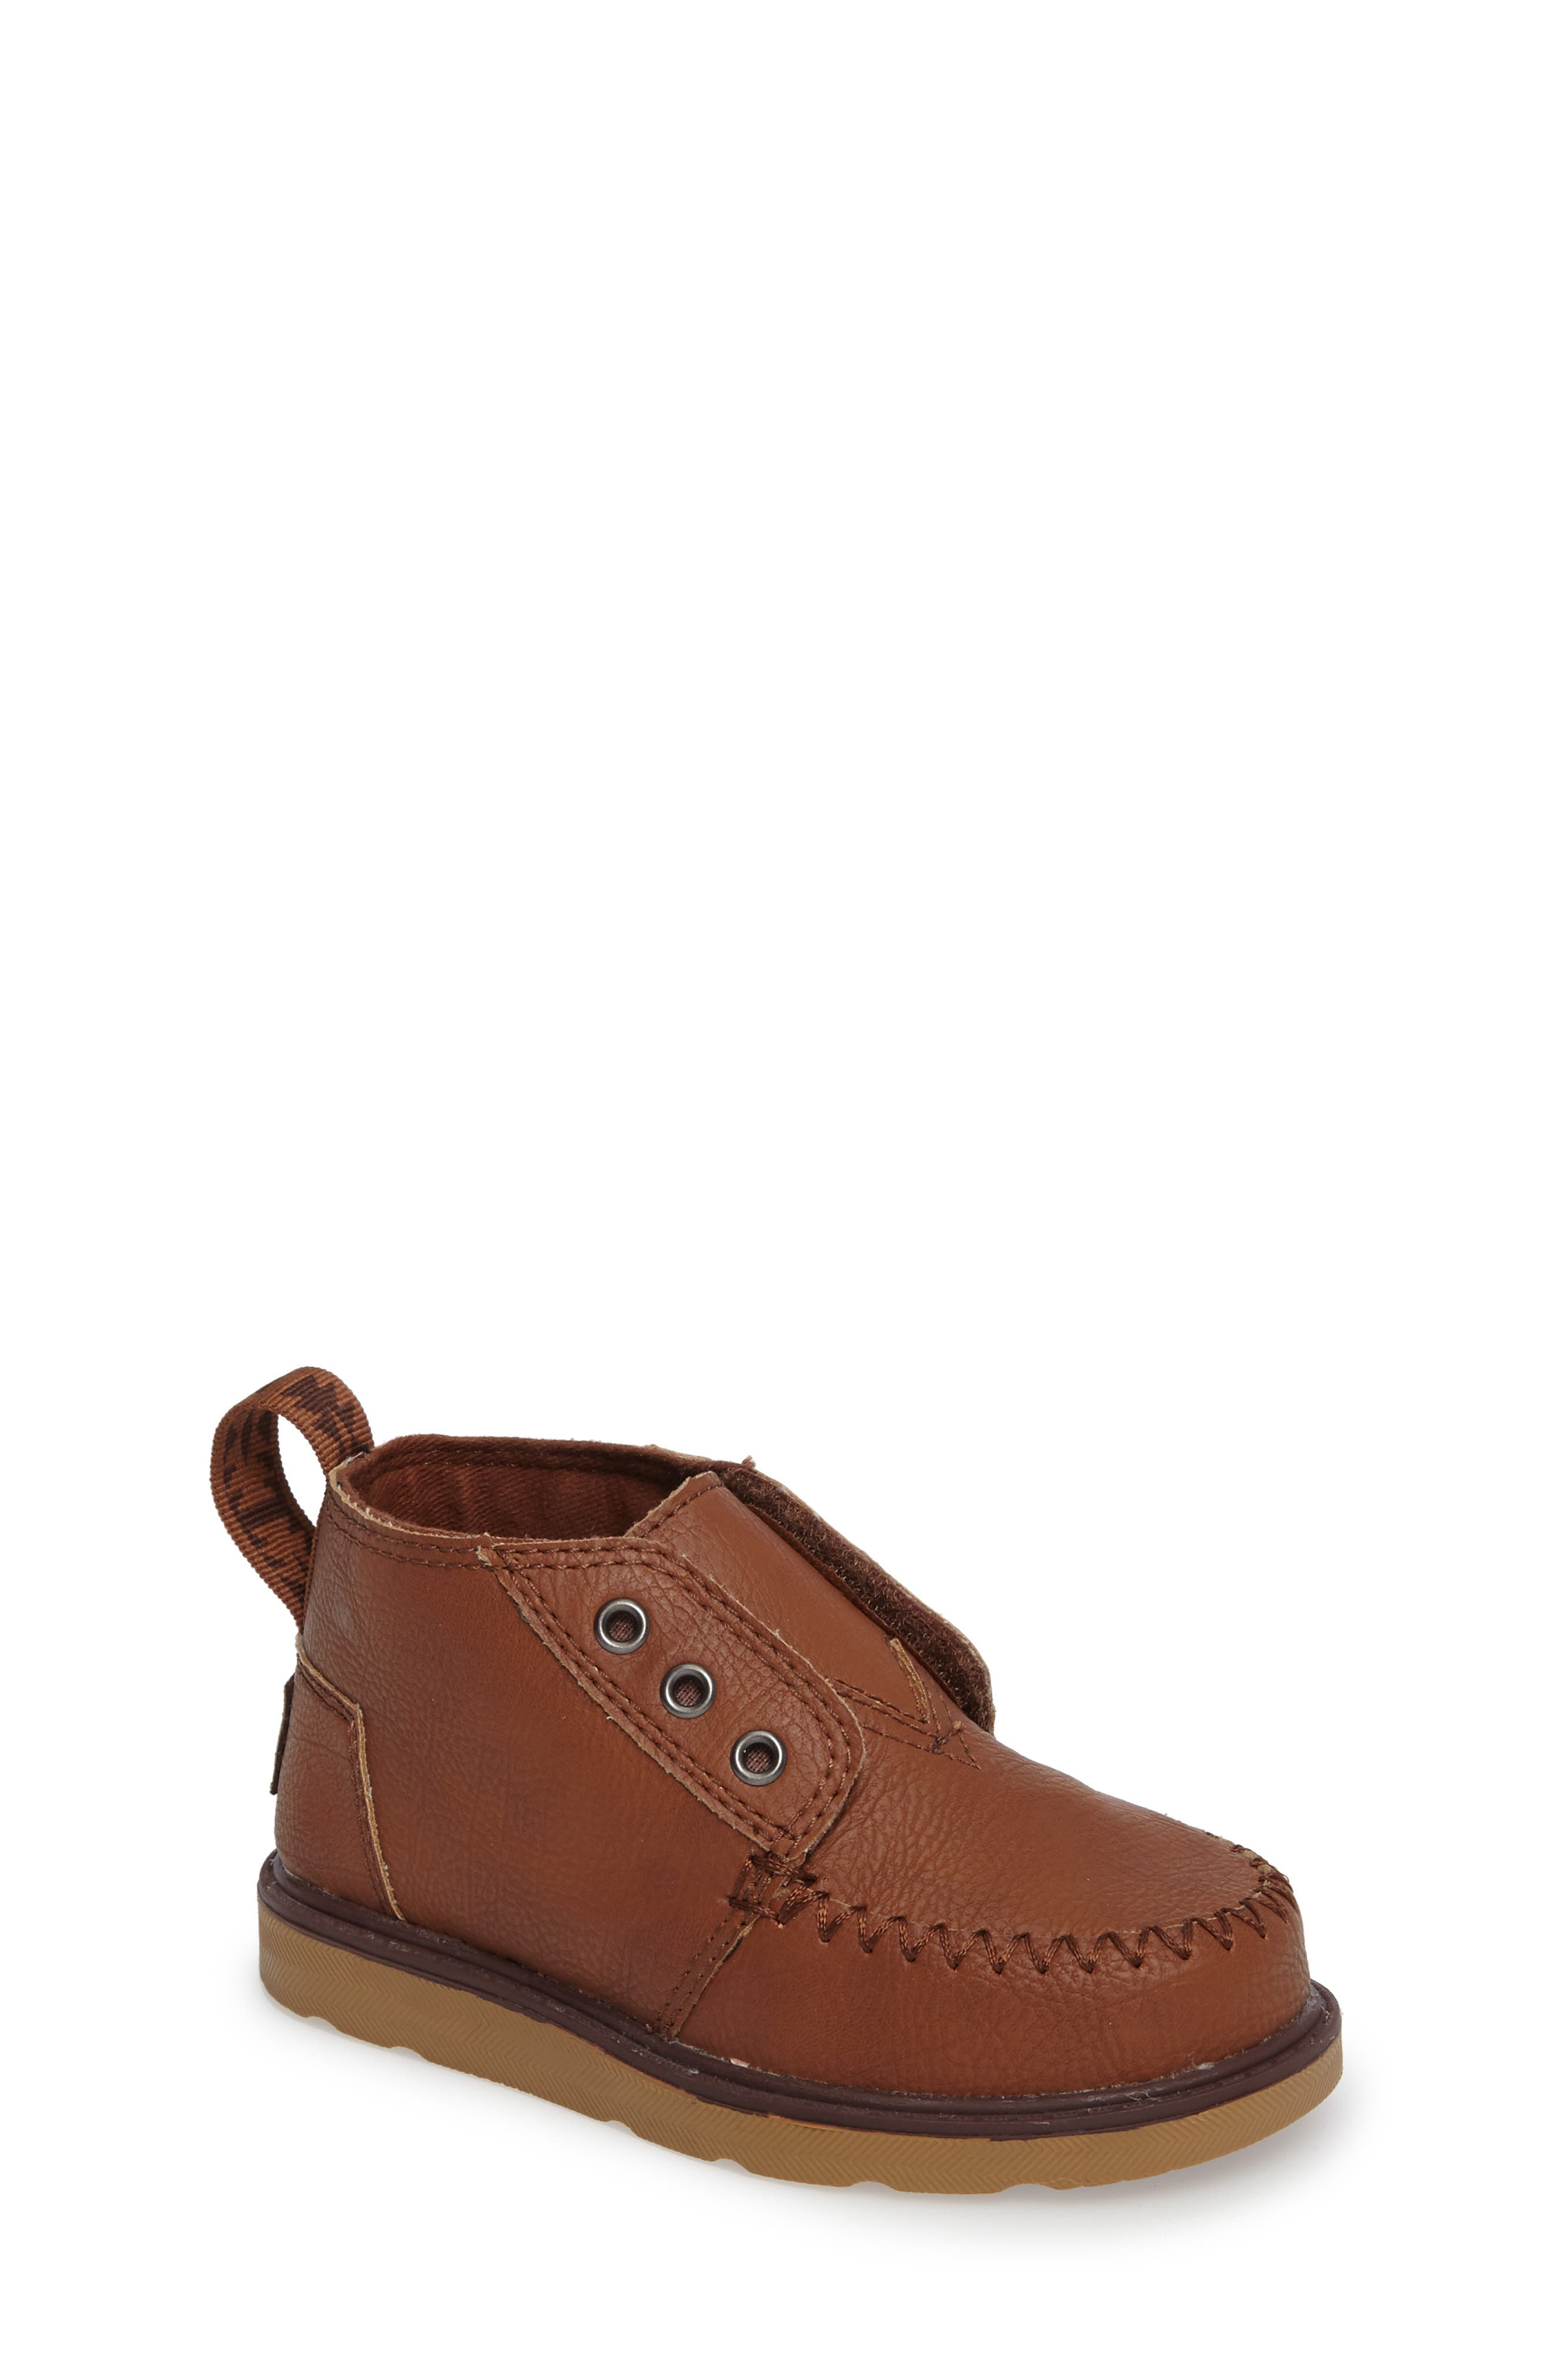 Alternate Image 1 Selected - TOMS Chukka Boot (Baby, Walker & Toddler)